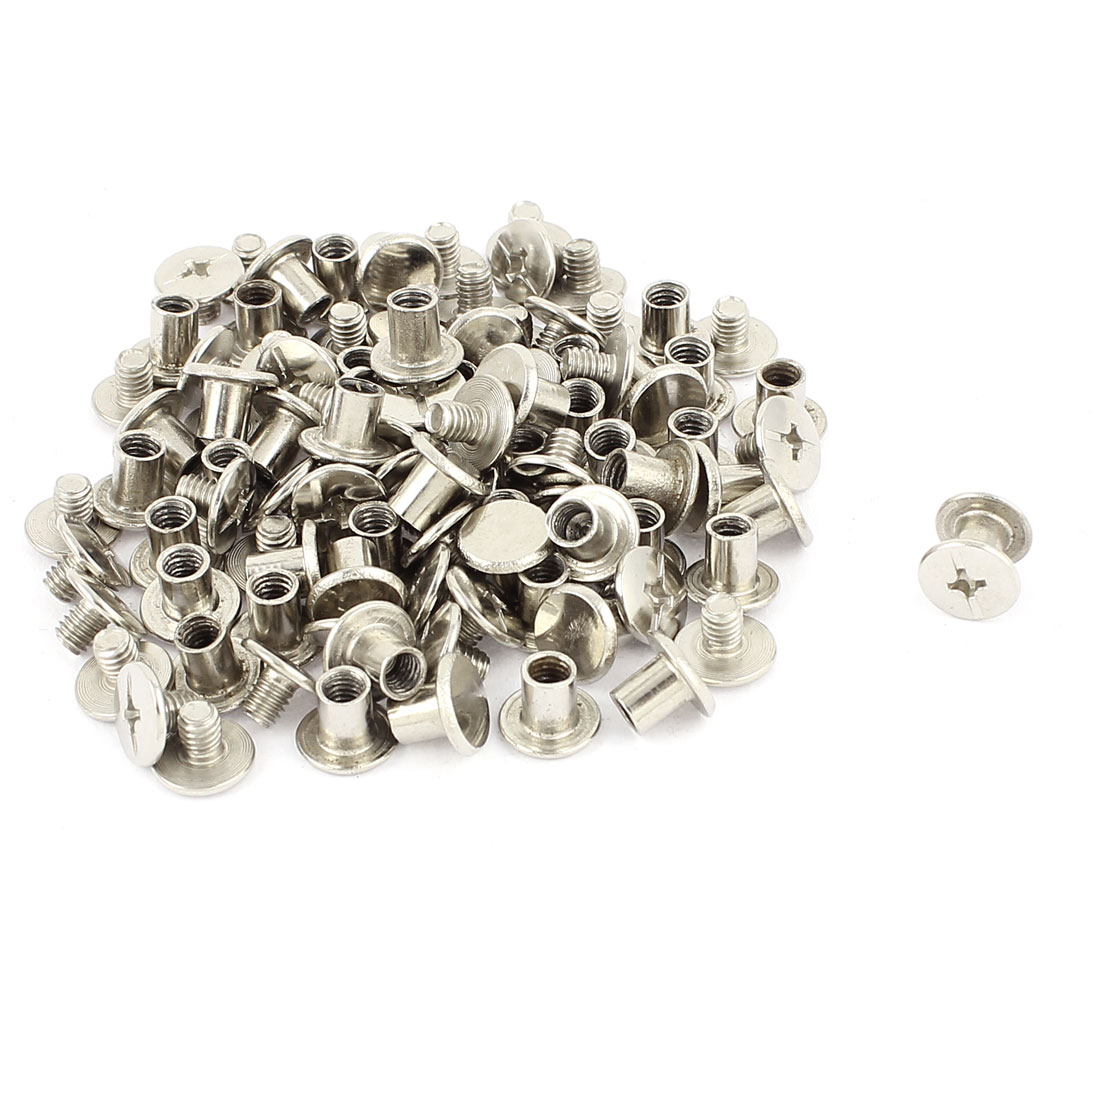 50Pcs M5x6mm Nickel Plated Binding Screw Post for Scrapbook Photo Albums